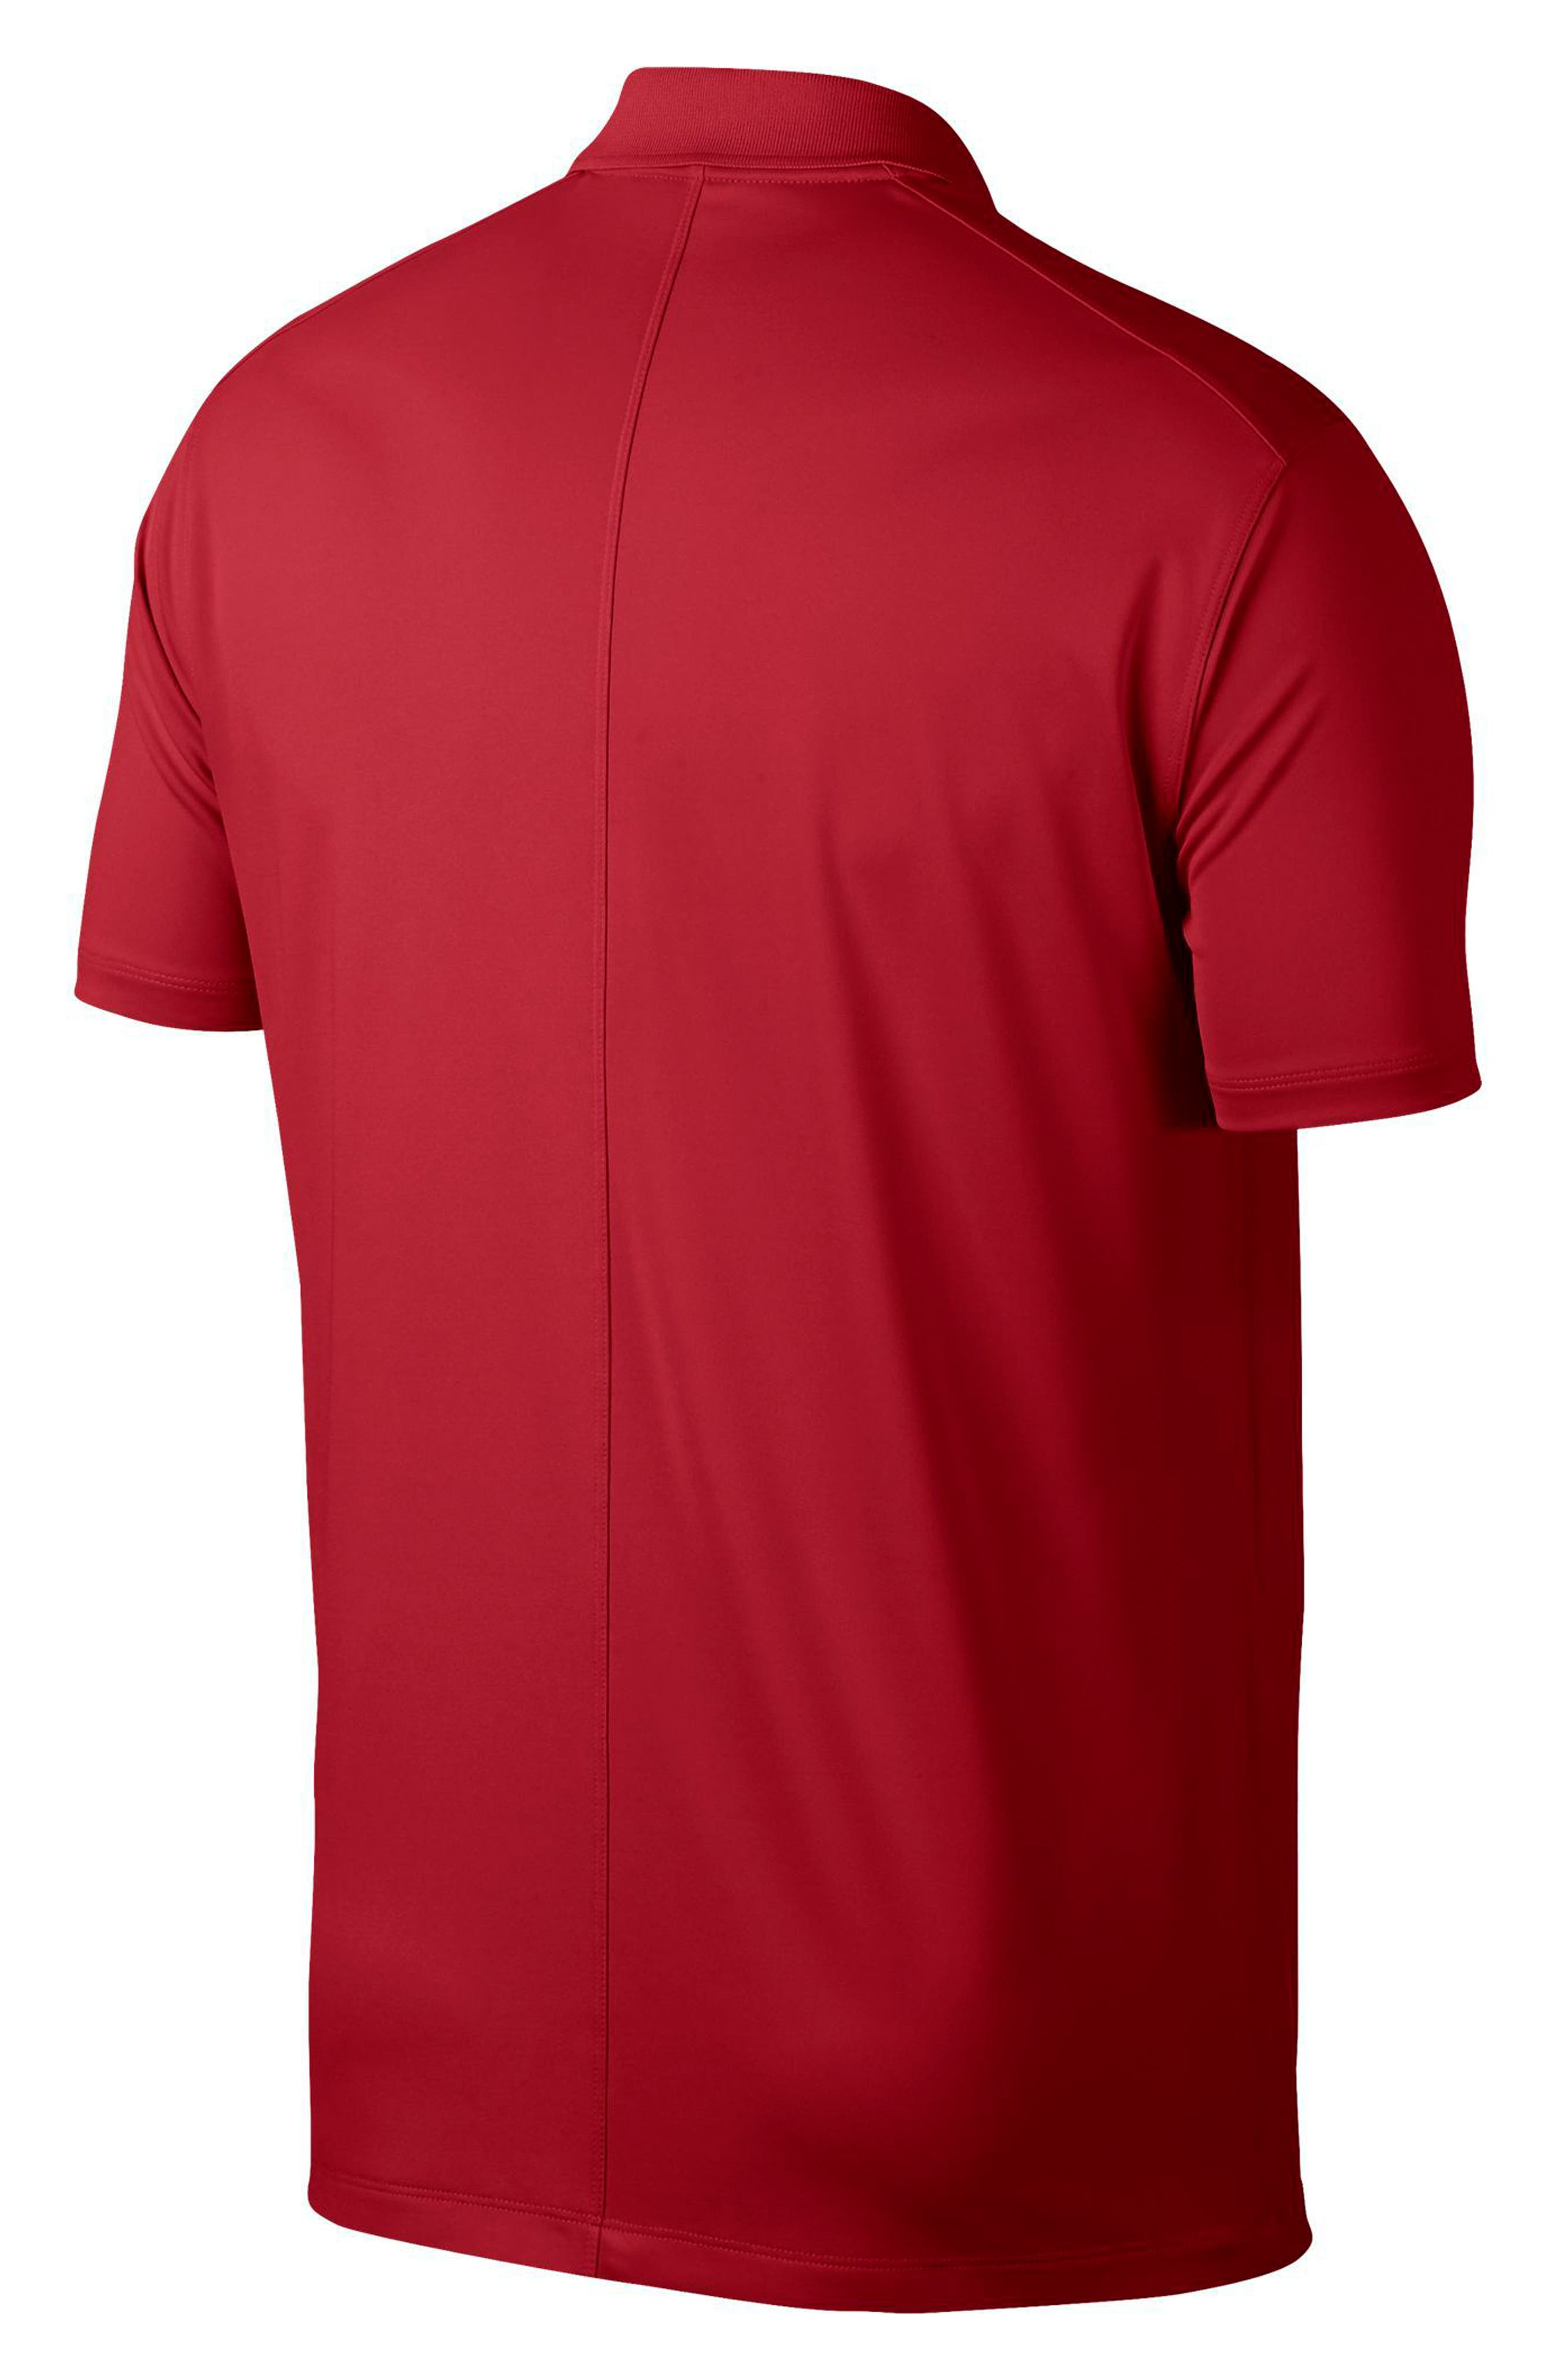 Dry Victory Golf Polo,                             Alternate thumbnail 4, color,                             UNIVERSITY RED/ BLACK